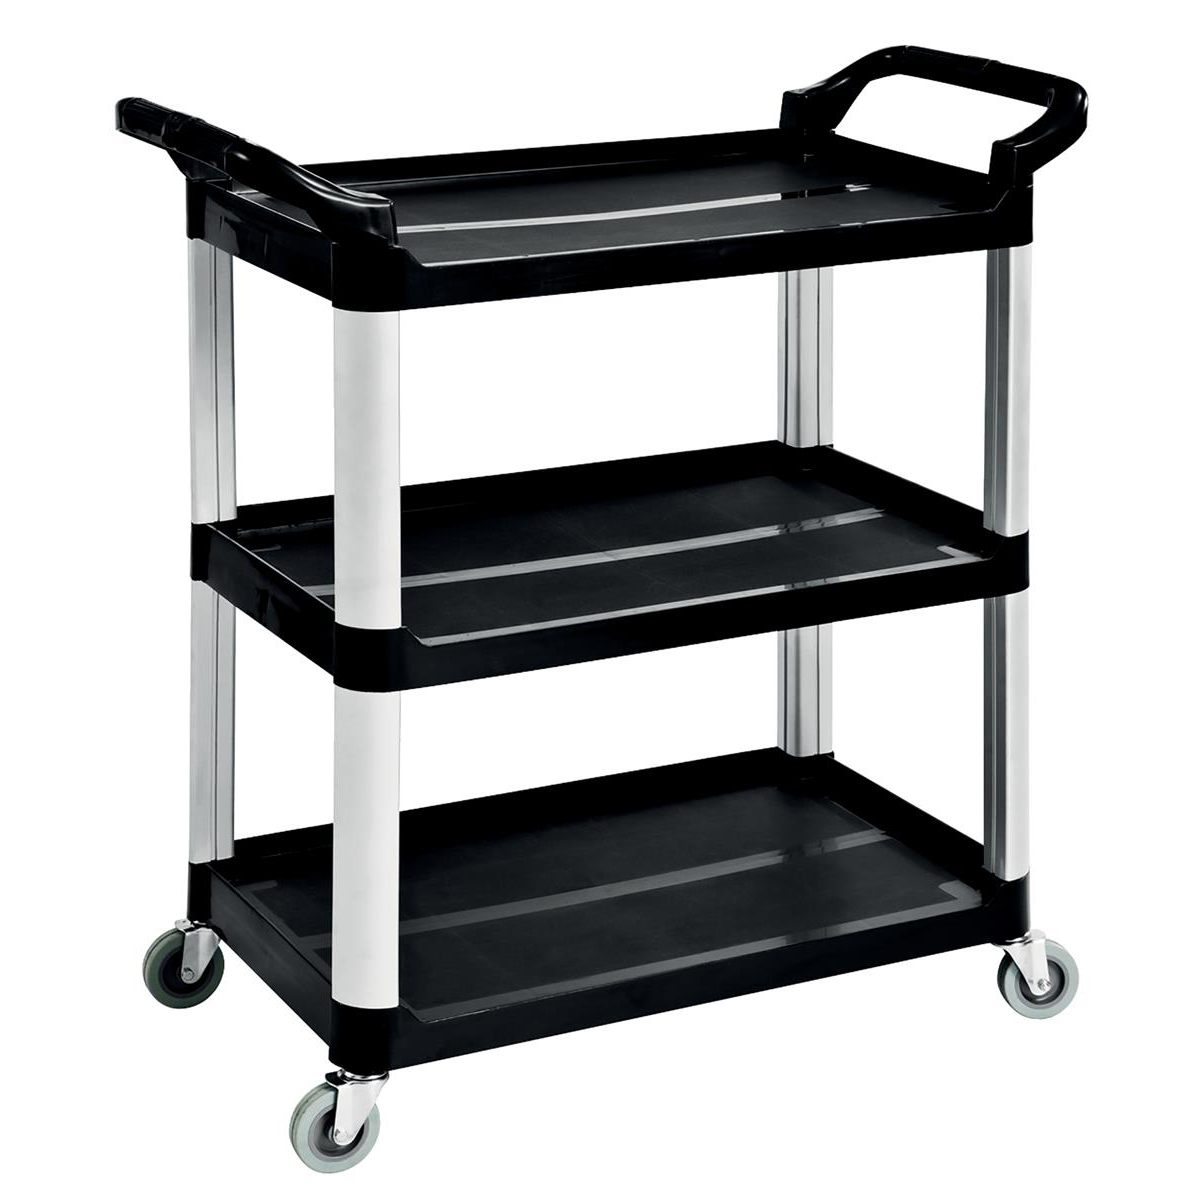 5 Star Facilities Utility Tray Trolley Standard 3 Shelf Capacity 150kg W460xD750xH980mm